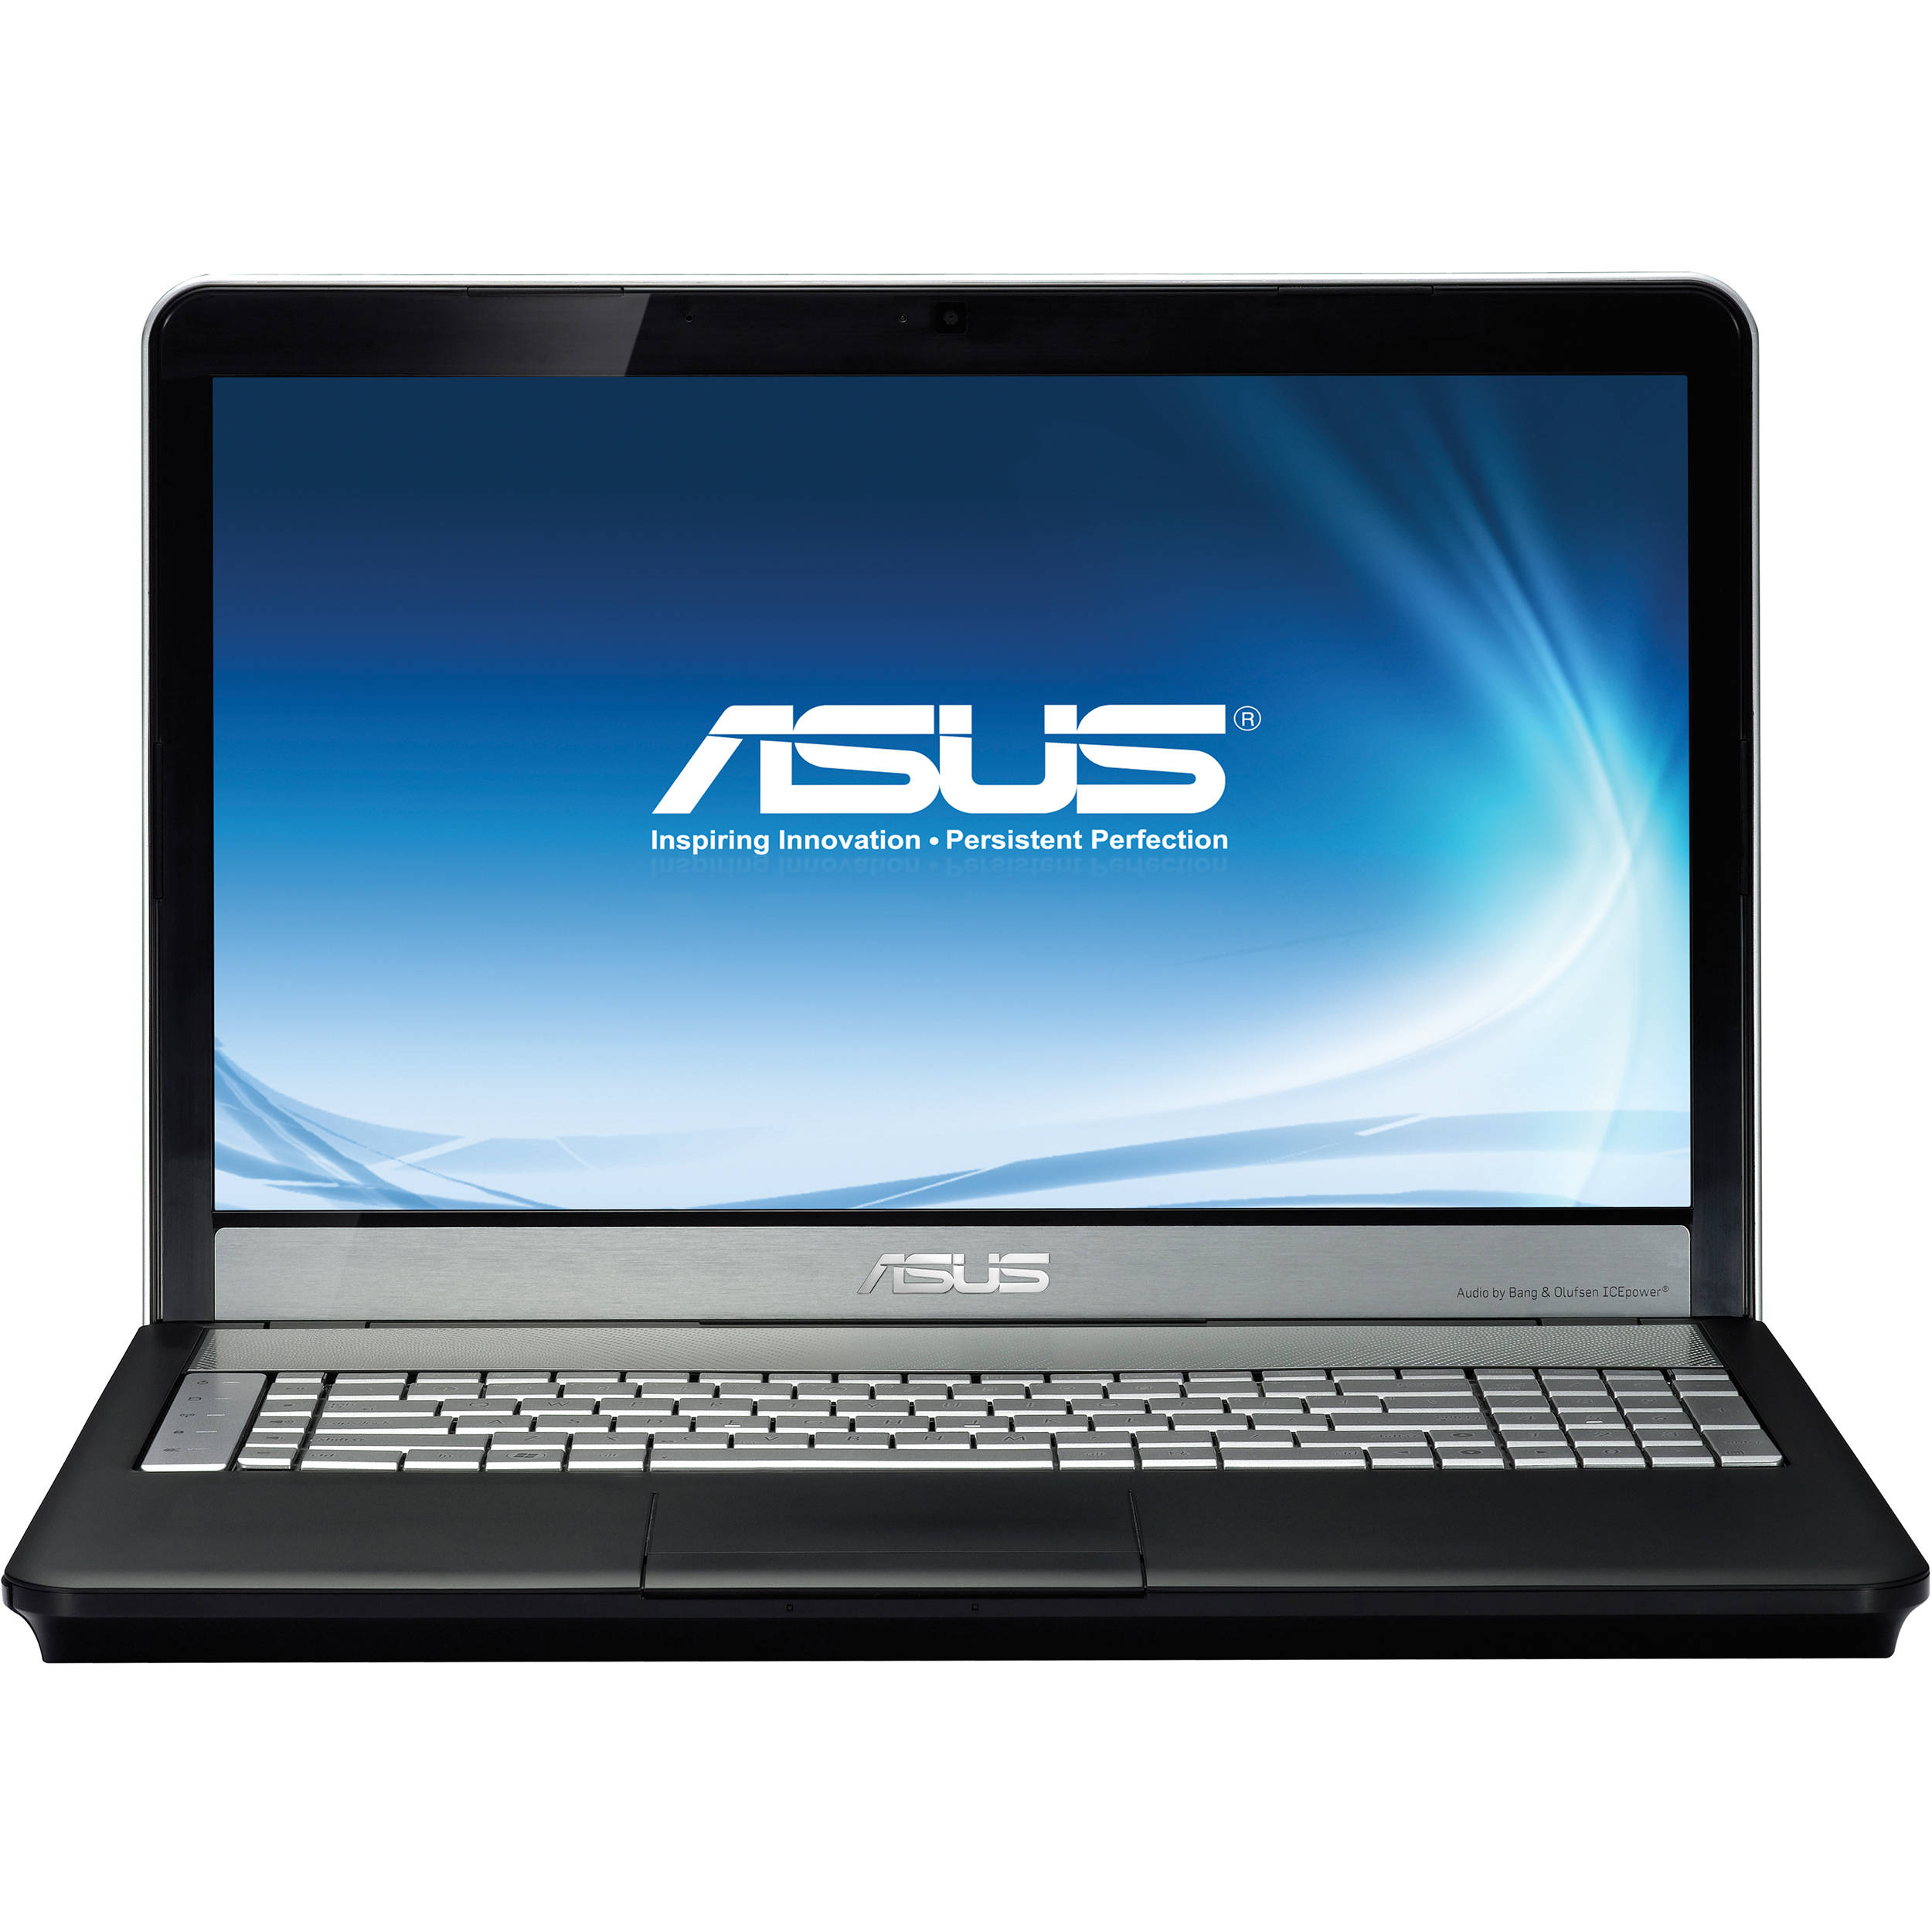 ASUS N75SF NVIDIA GRAPHICS WINDOWS 8 X64 DRIVER DOWNLOAD